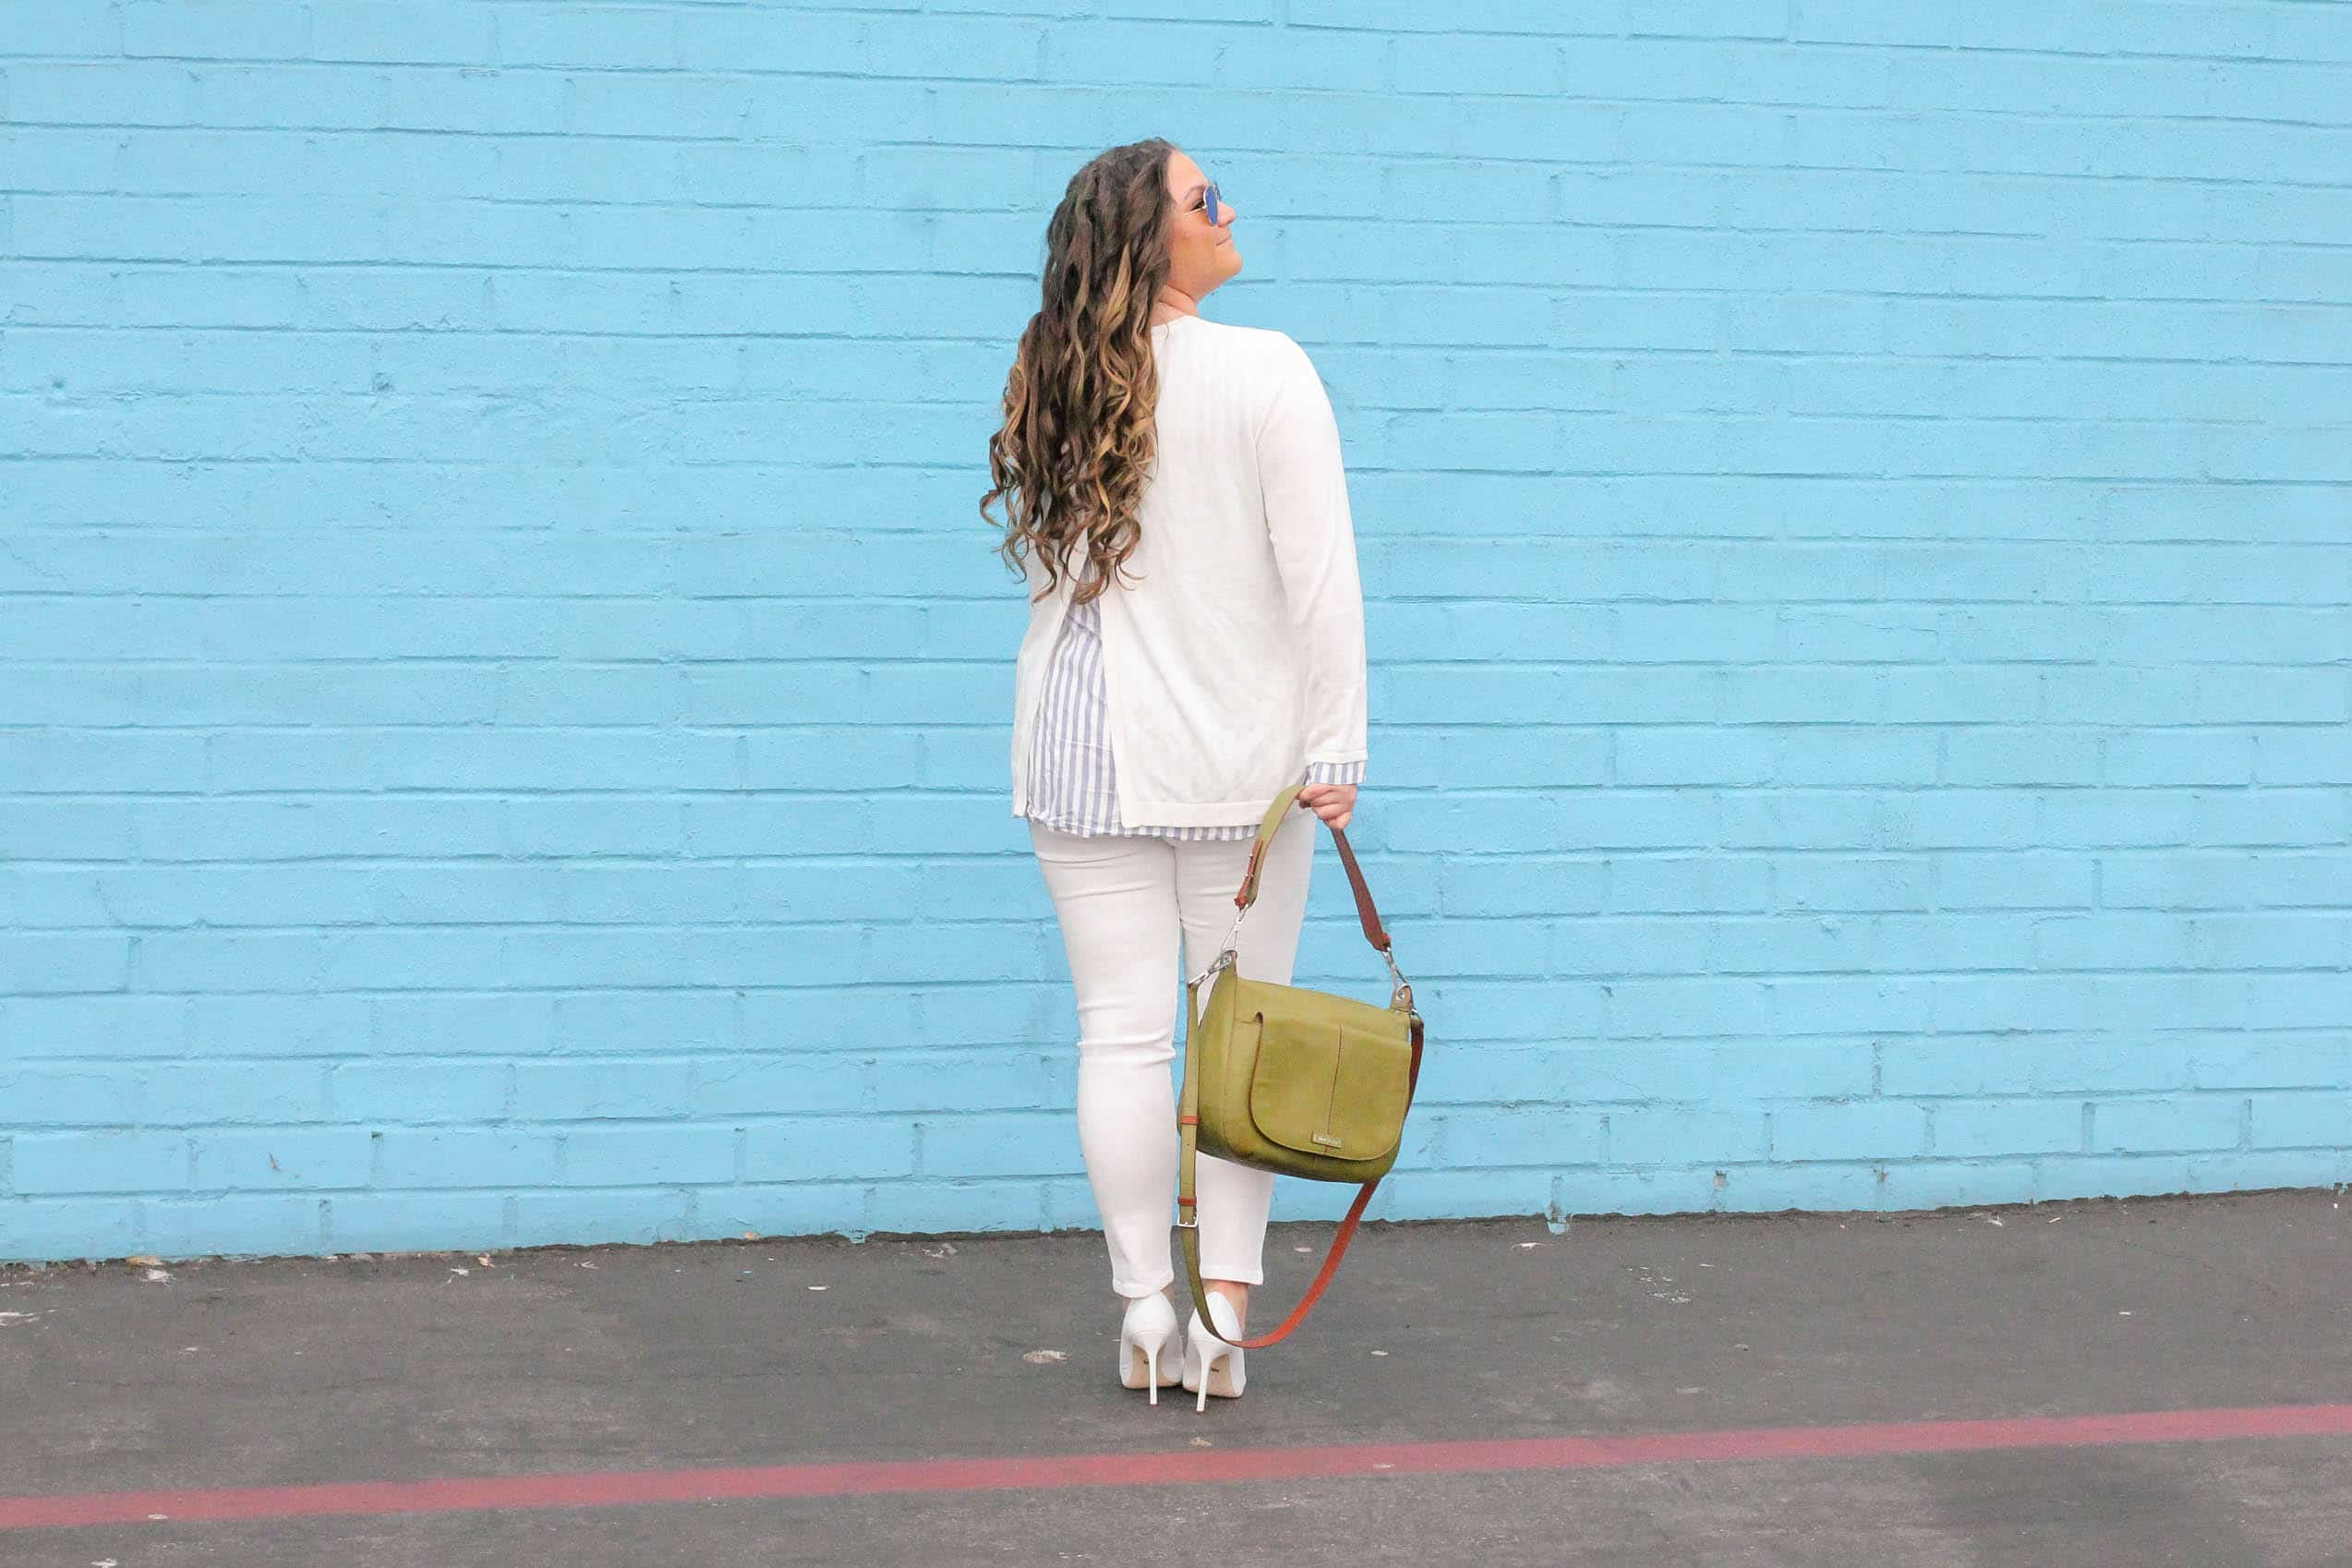 missyonmadison, missyonmadison instagram, melissa tierney, coco cooper denim, white skinny jeans, vera bradley, vera bradley carson shoulder bag, la style, white pumps, white heels, white pointed toe pumps, white after labor day, how to wear white after labor day, fall style, white sweater, skies are blue sweater, bloglovin, fashion blogger, style blogger, style inspo, fall fashion,